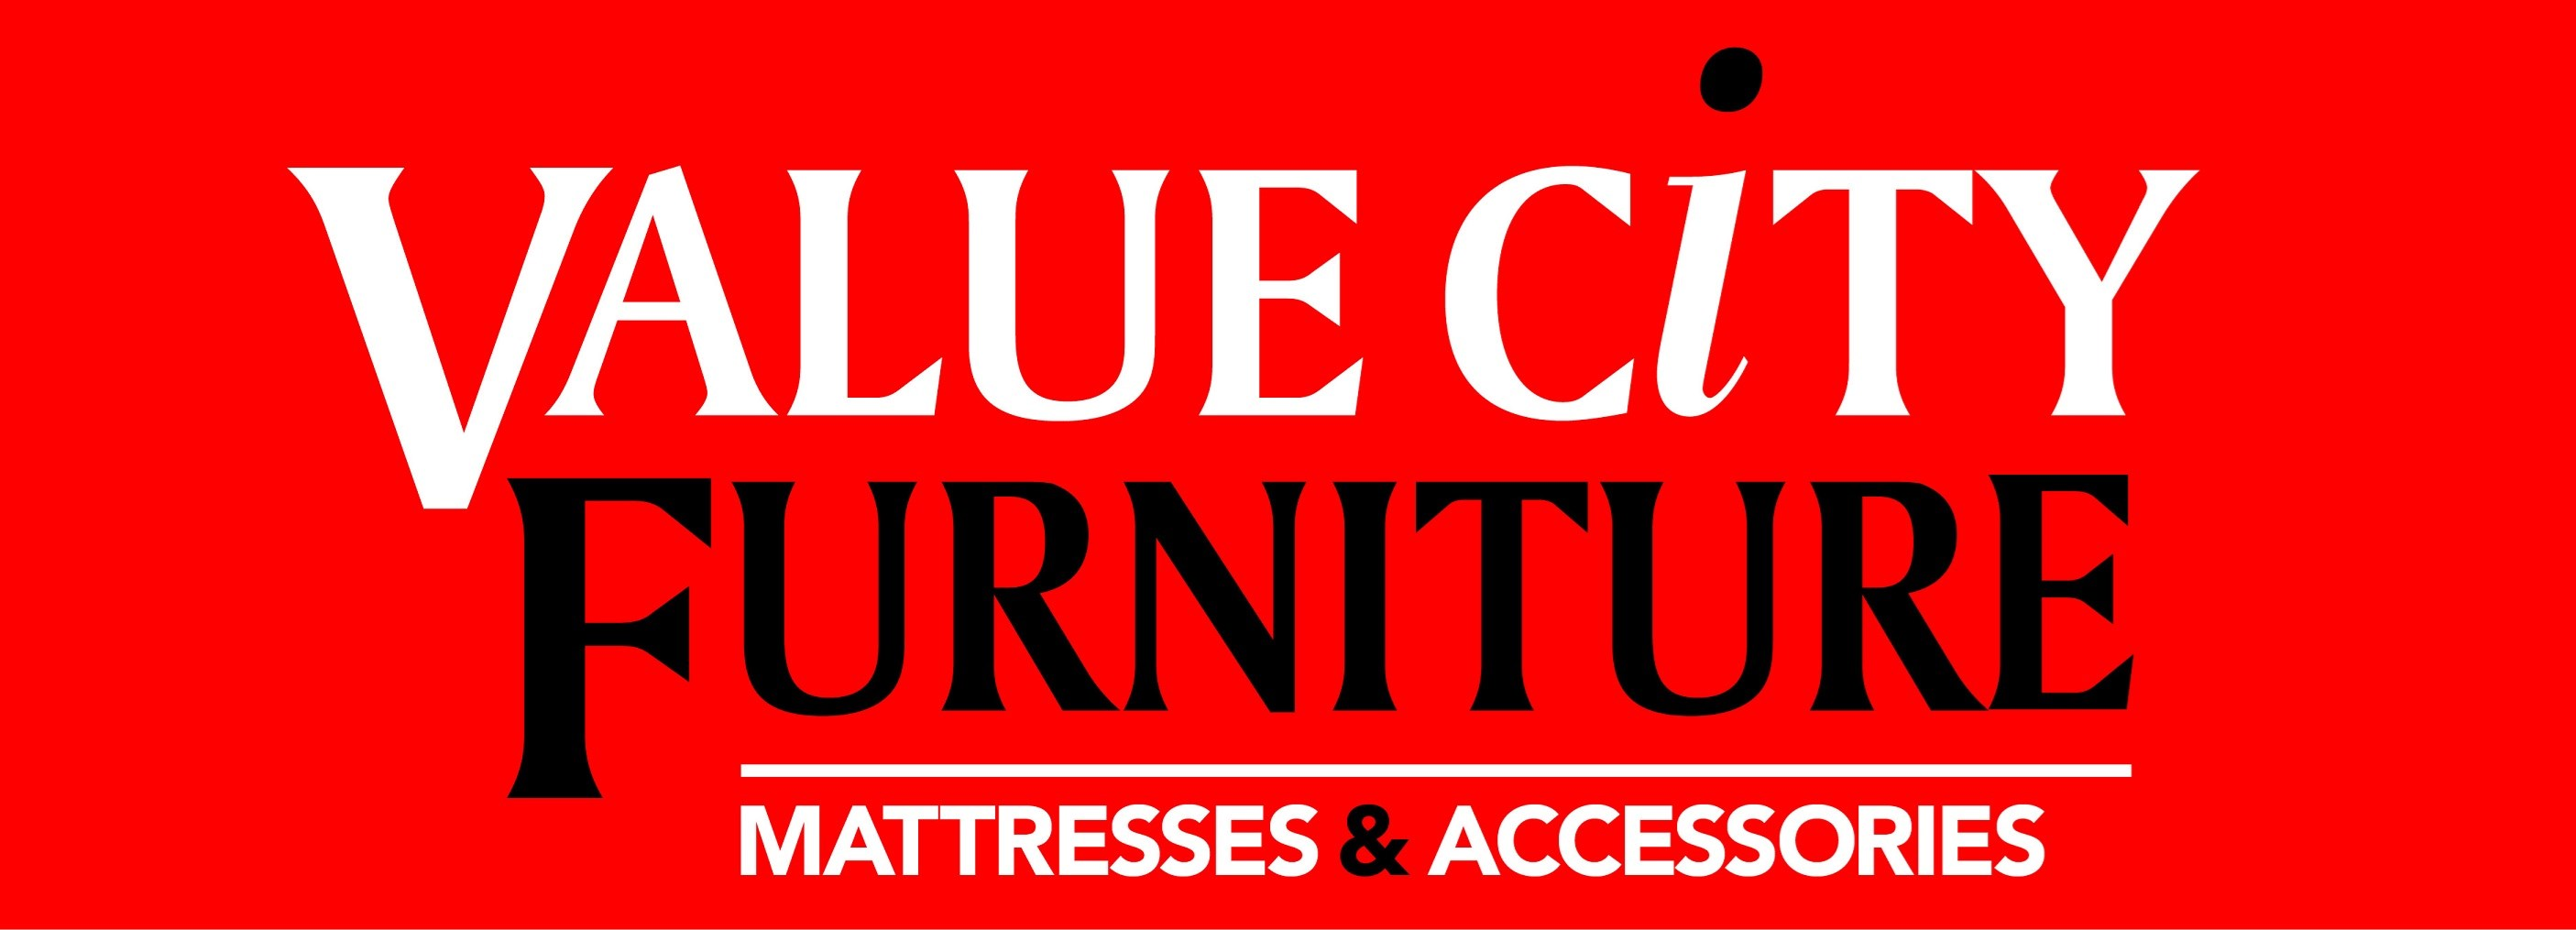 Value City Furniture New Jersey NJ Staten Island NYC